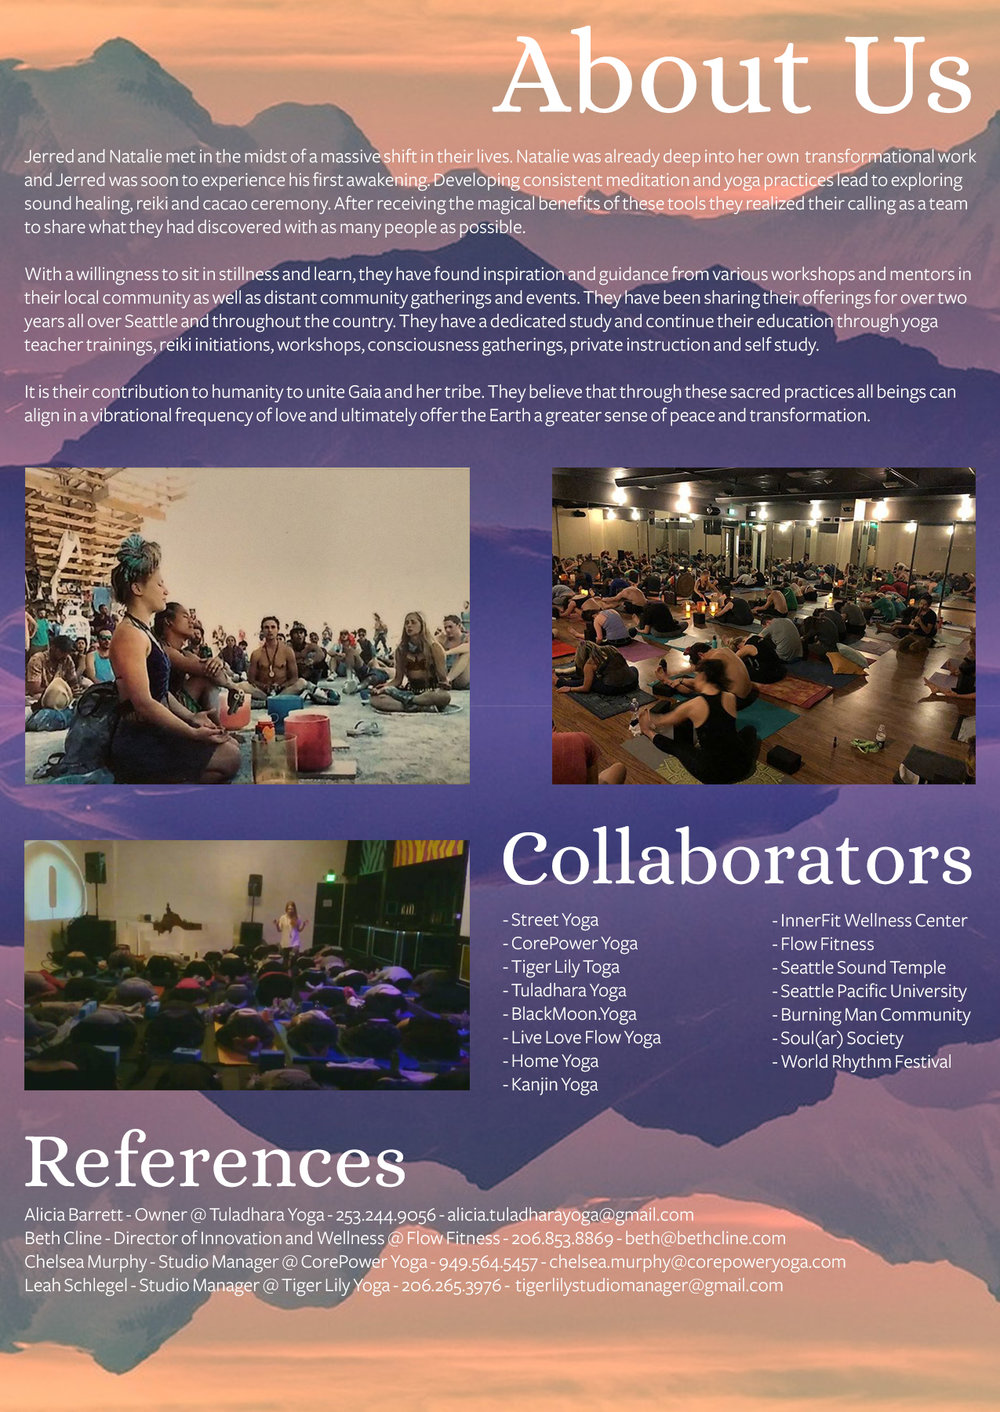 Workshop Offerings 2018 About Us and Collaborators